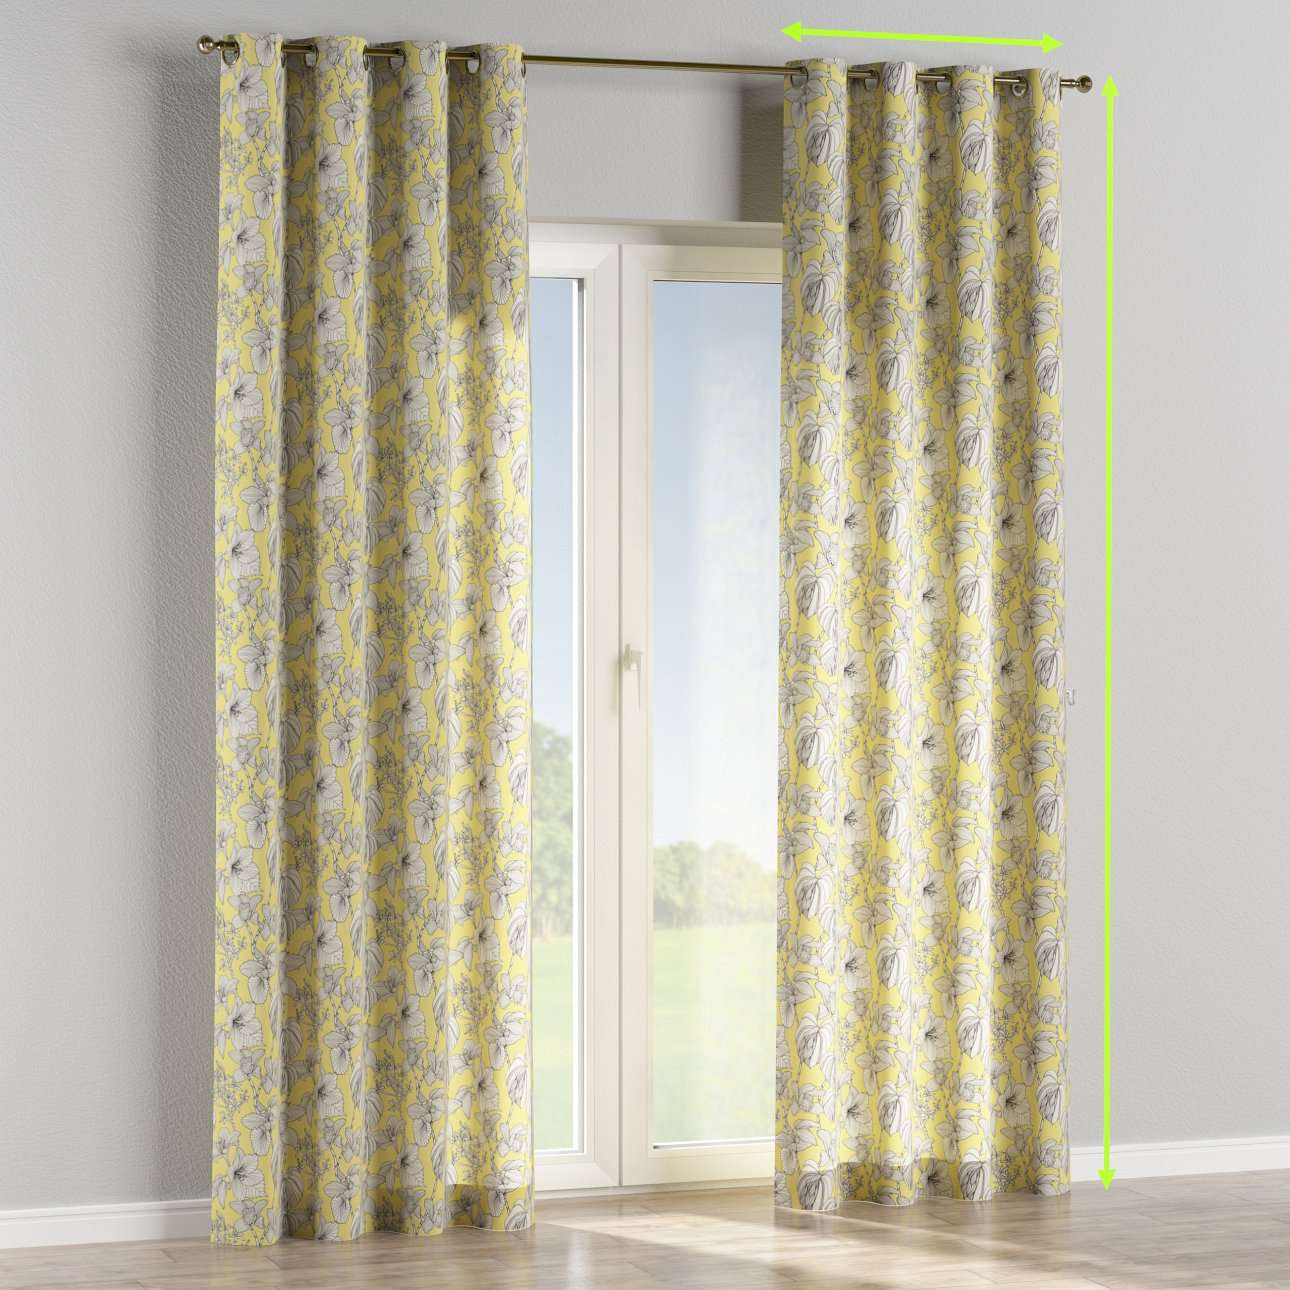 Eyelet curtain in collection SALE, fabric: 137-78